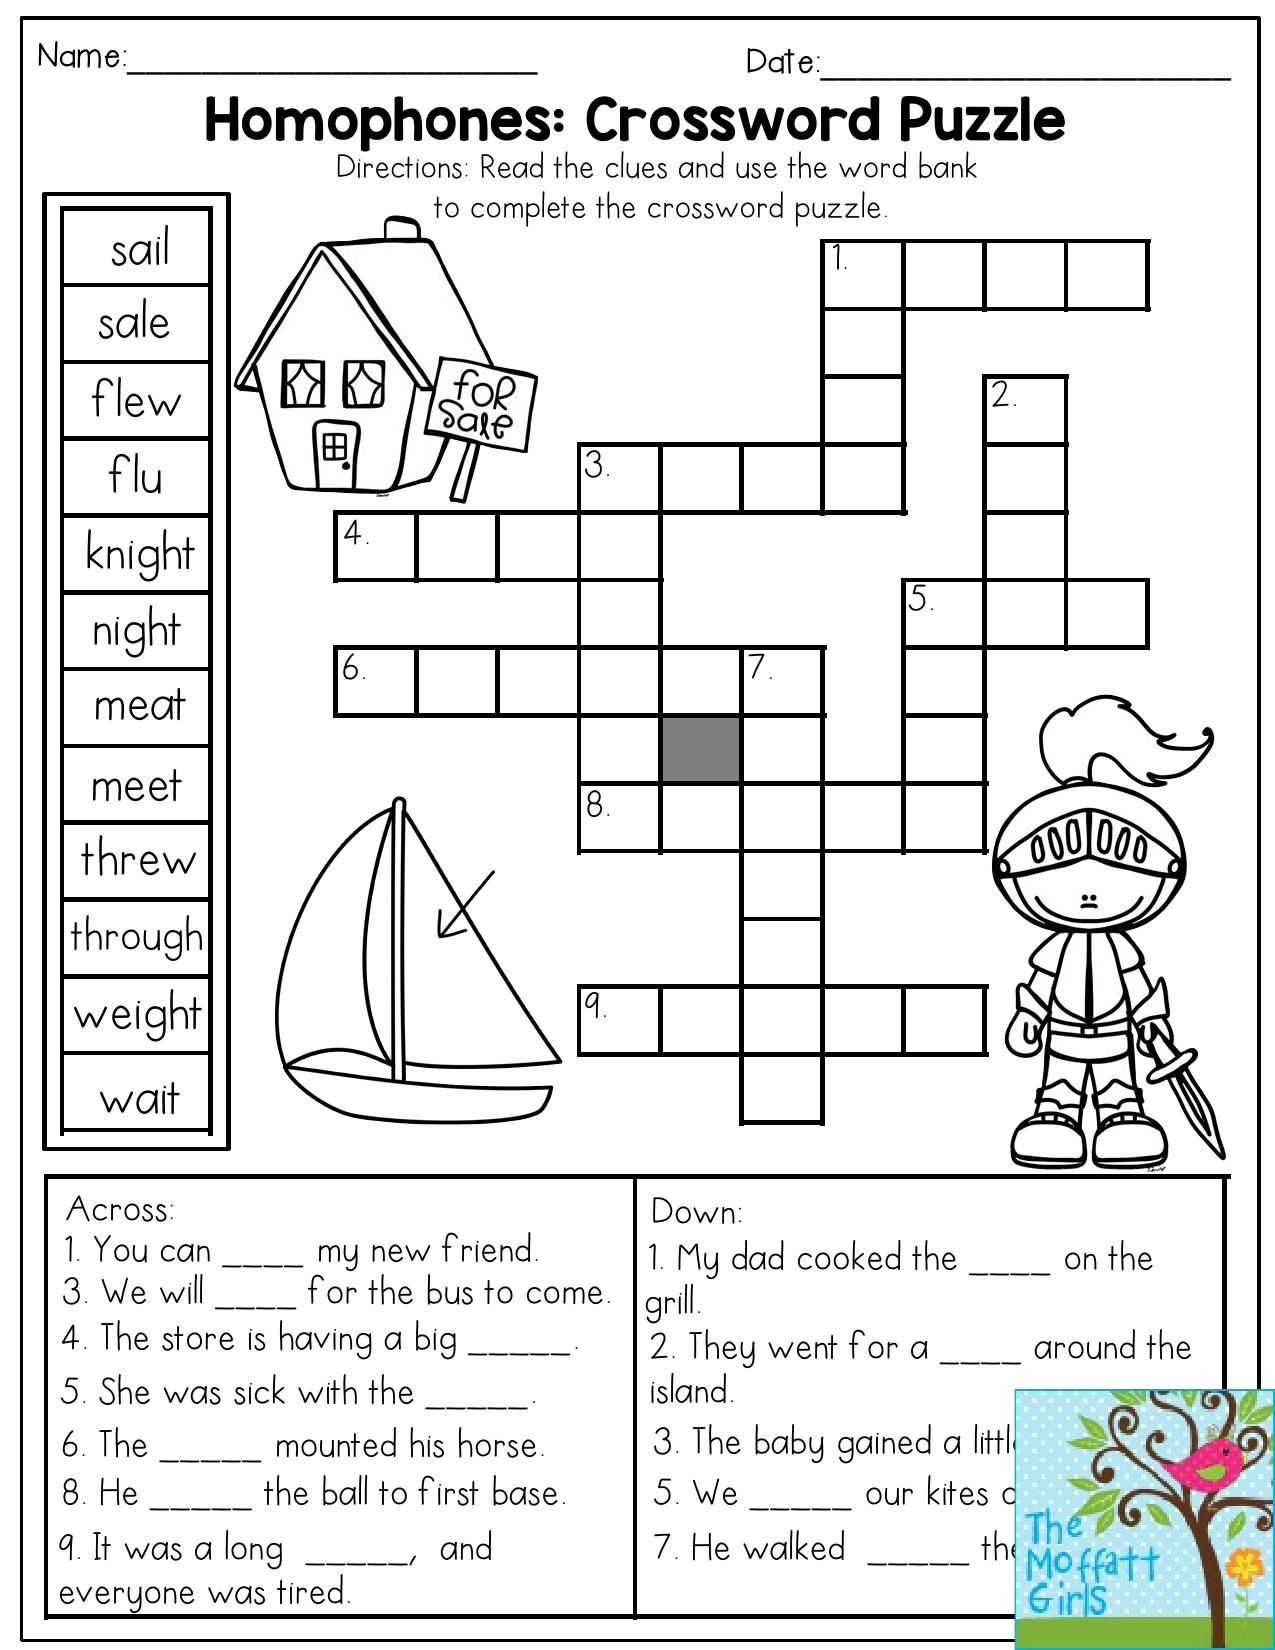 Homophones Worksheets 2nd Grade Homophones Crossword Puzzle Read the Clues and Use the